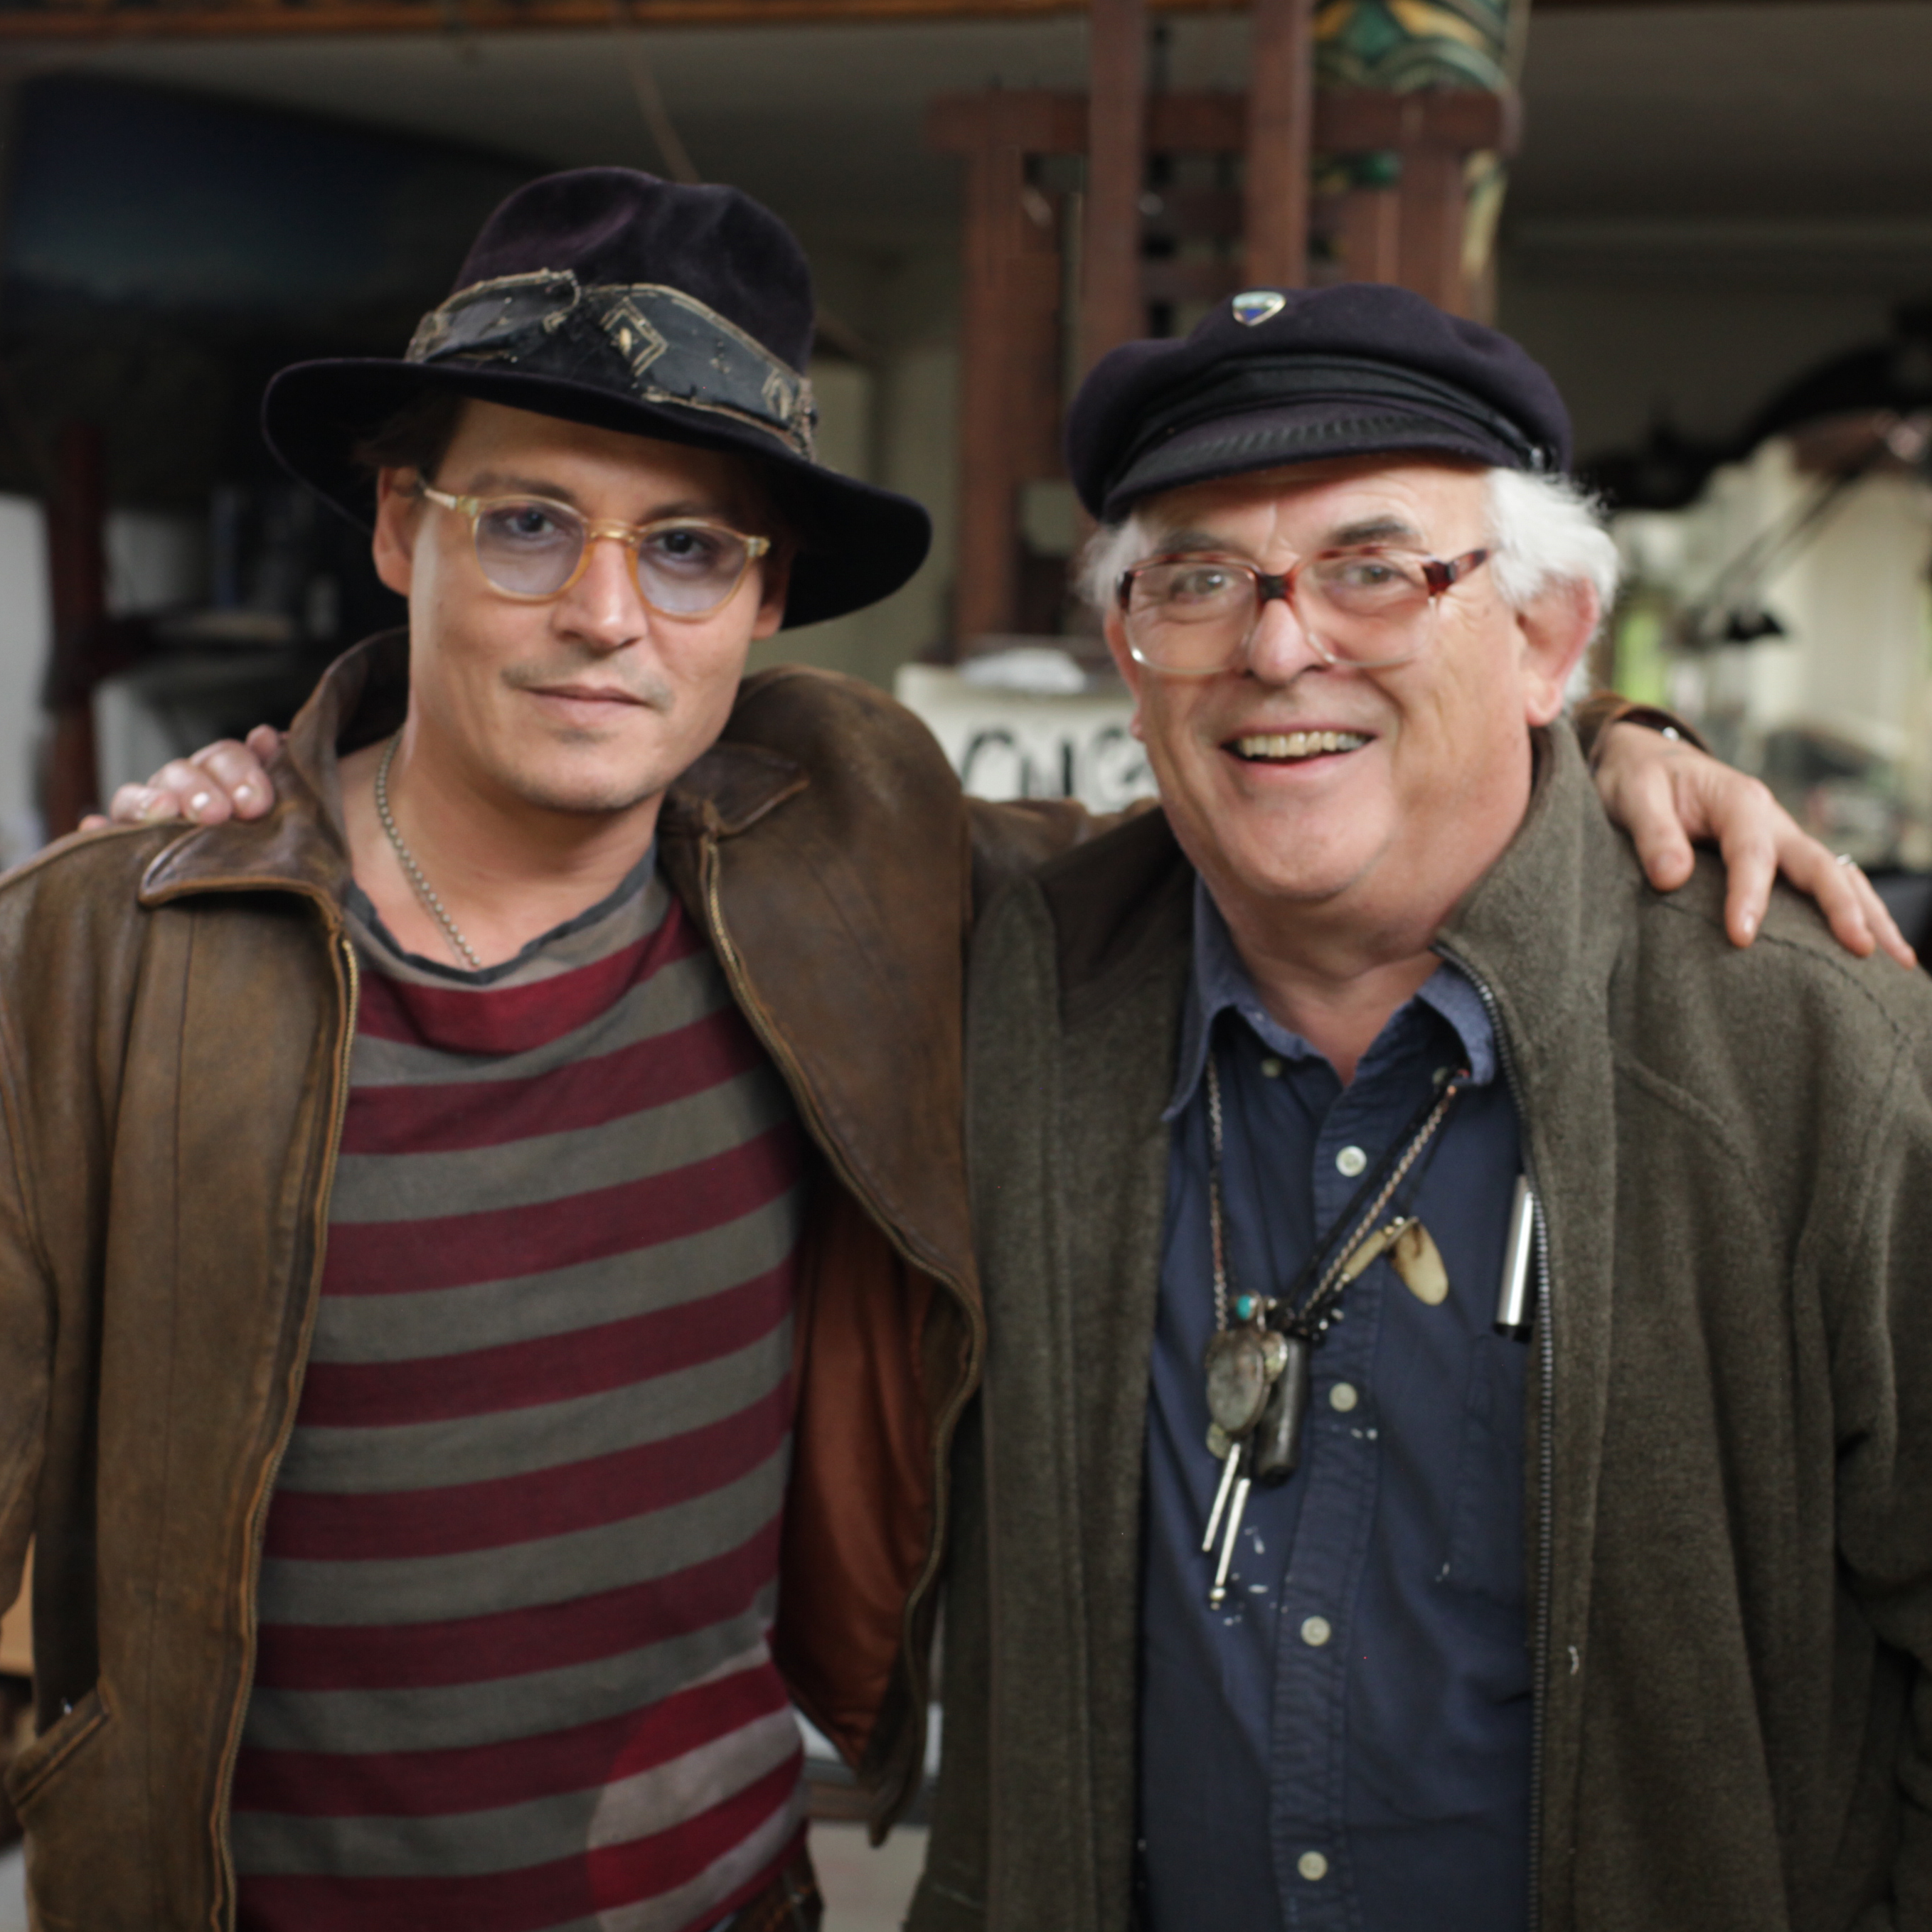 Johnny Depp and Ralph Steadman in Steadman's studio.